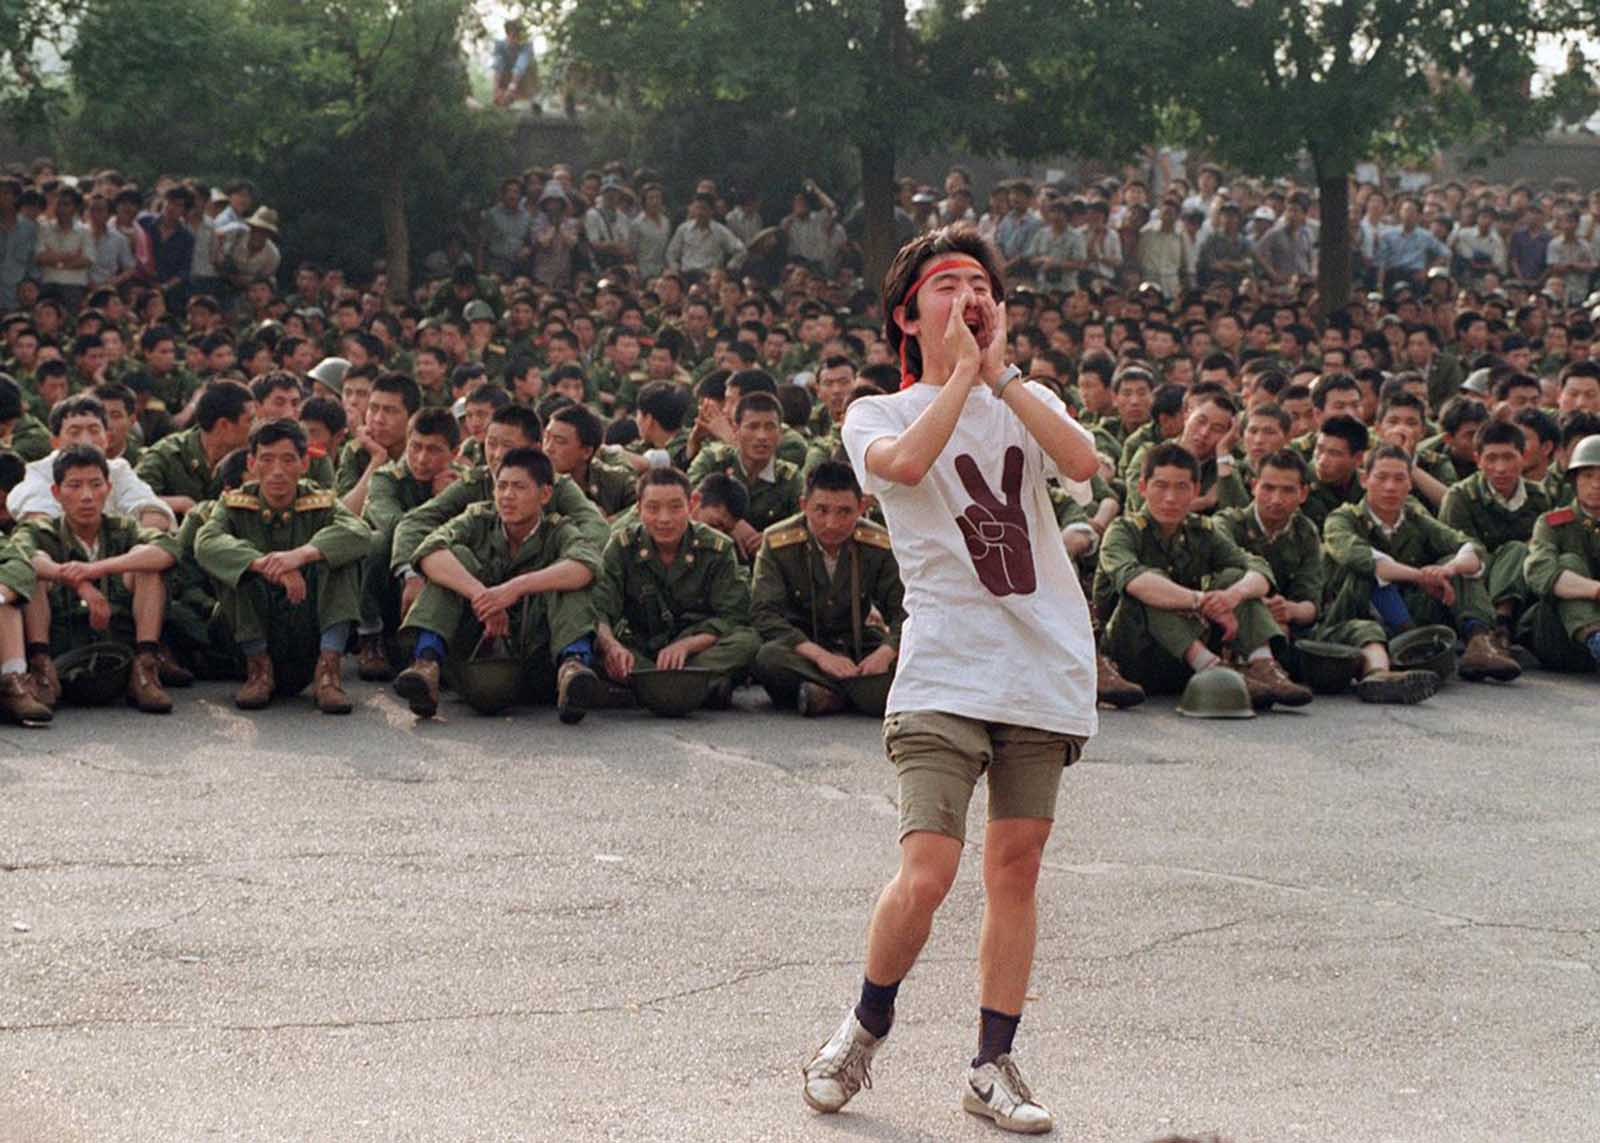 A dissident student asks soldiers to go back home as crowds flooded into the central Beijing, on June 3, 1989.